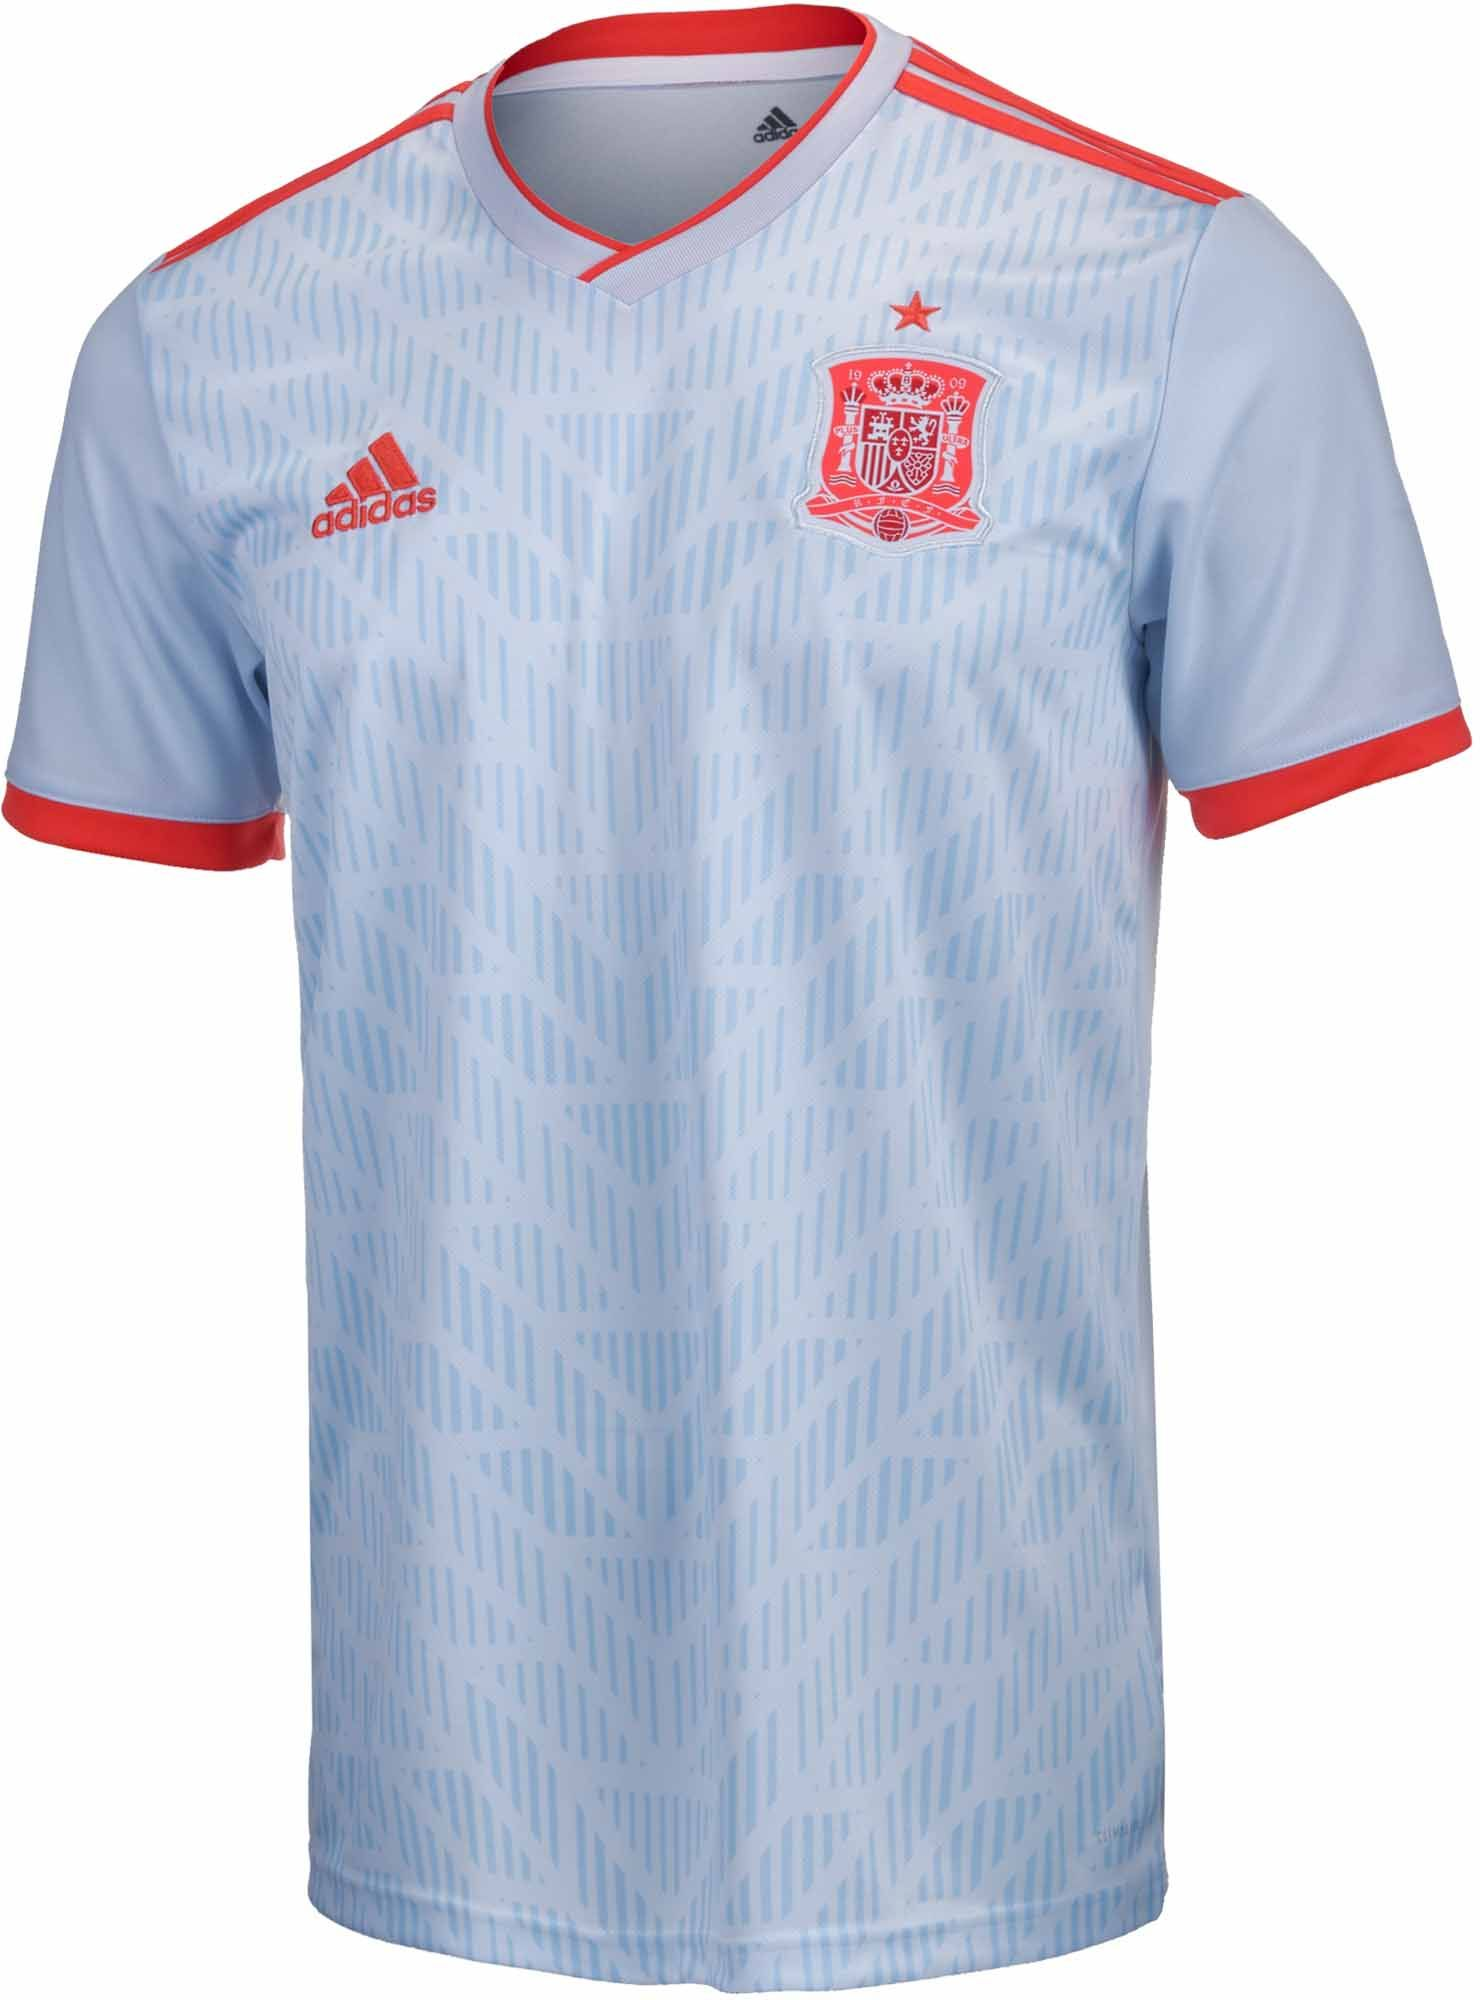 3296f66e adidas Kids Spain Away Jersey 2018-19 NS | Kids Licensed Soccer ...